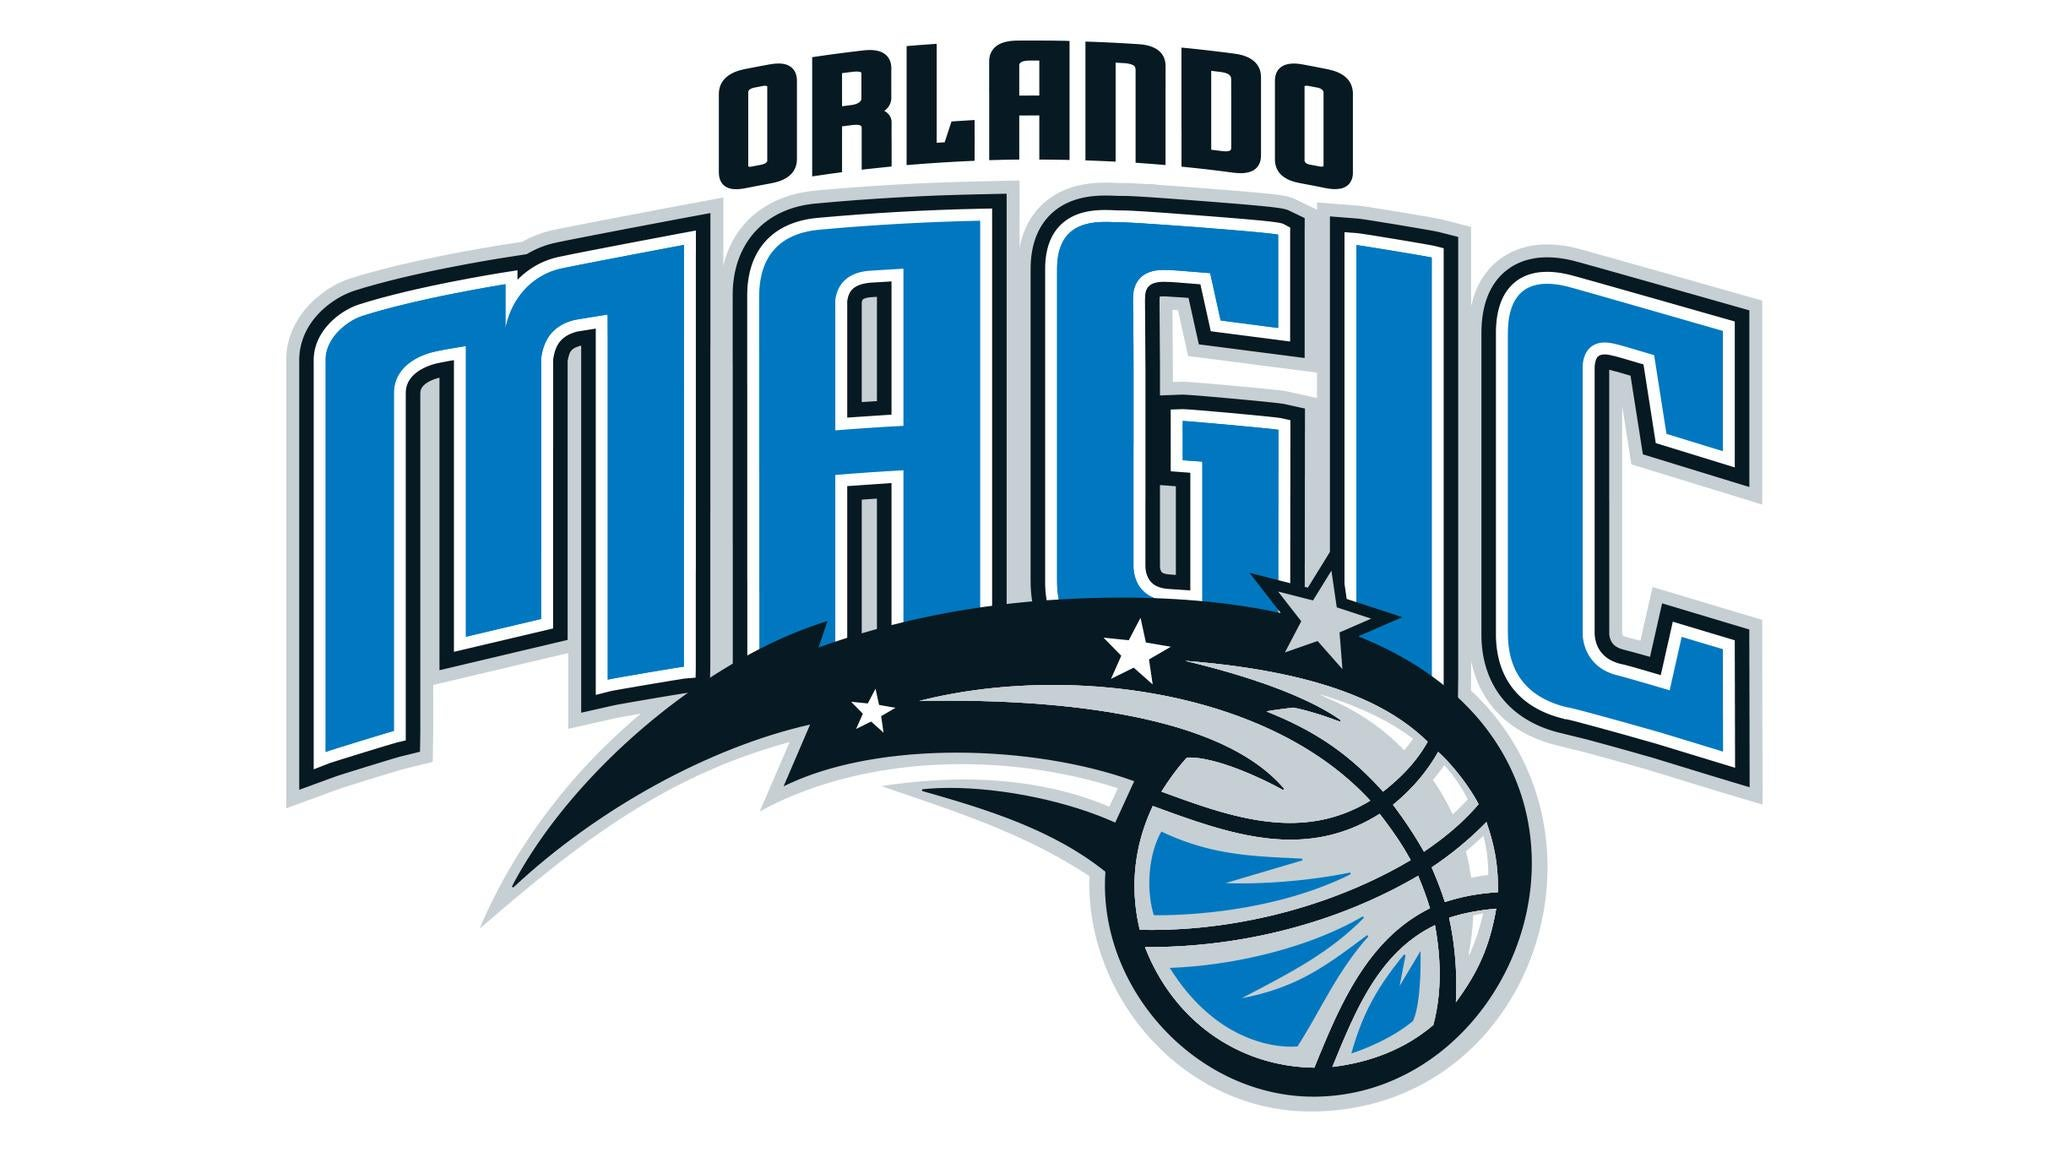 Orlando Magic vs. Indiana Pacers at Amway Center - Orlando, FL 32801